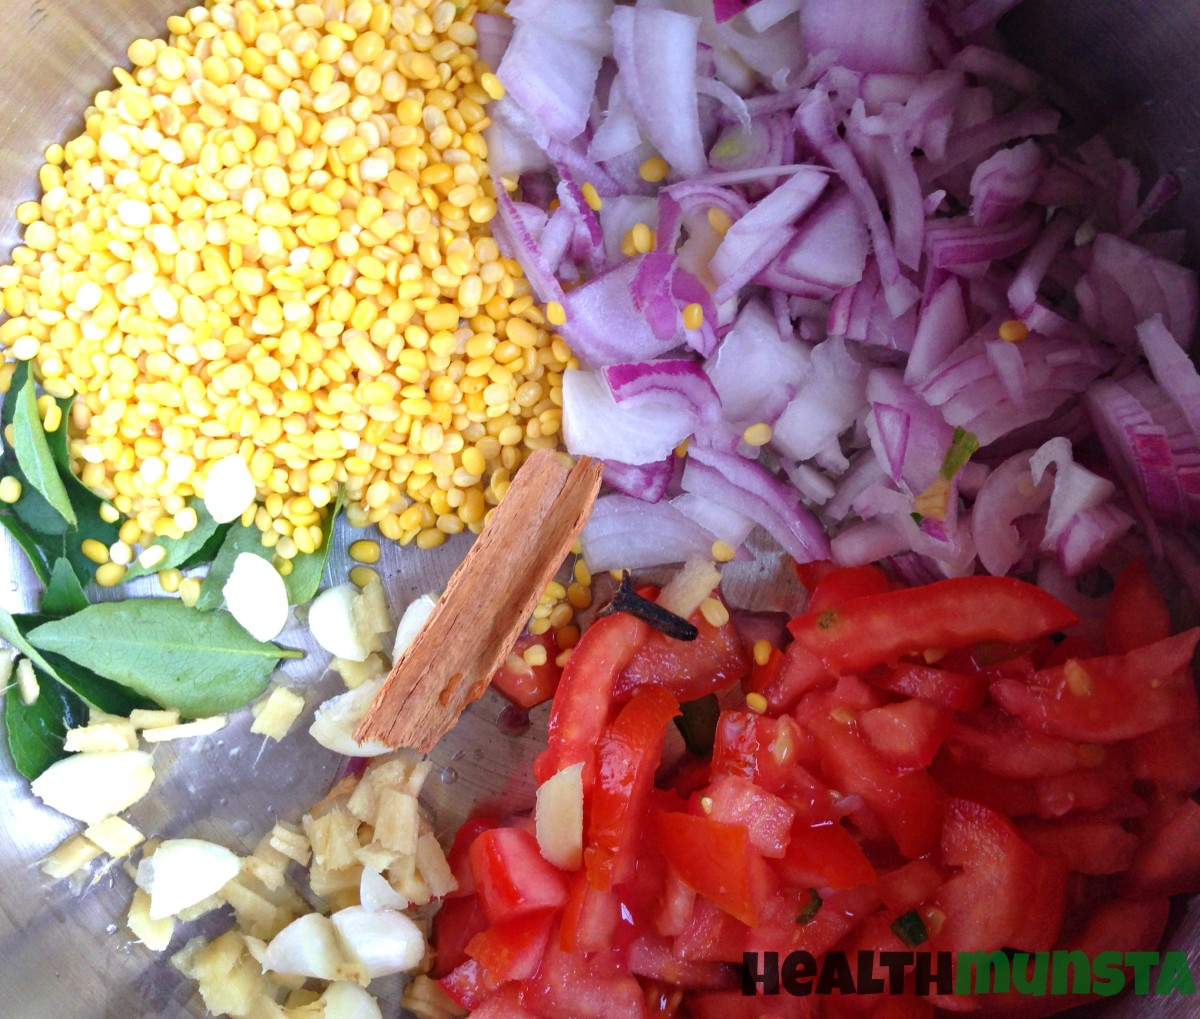 Put all the chopped ingredients into a cooking pot.